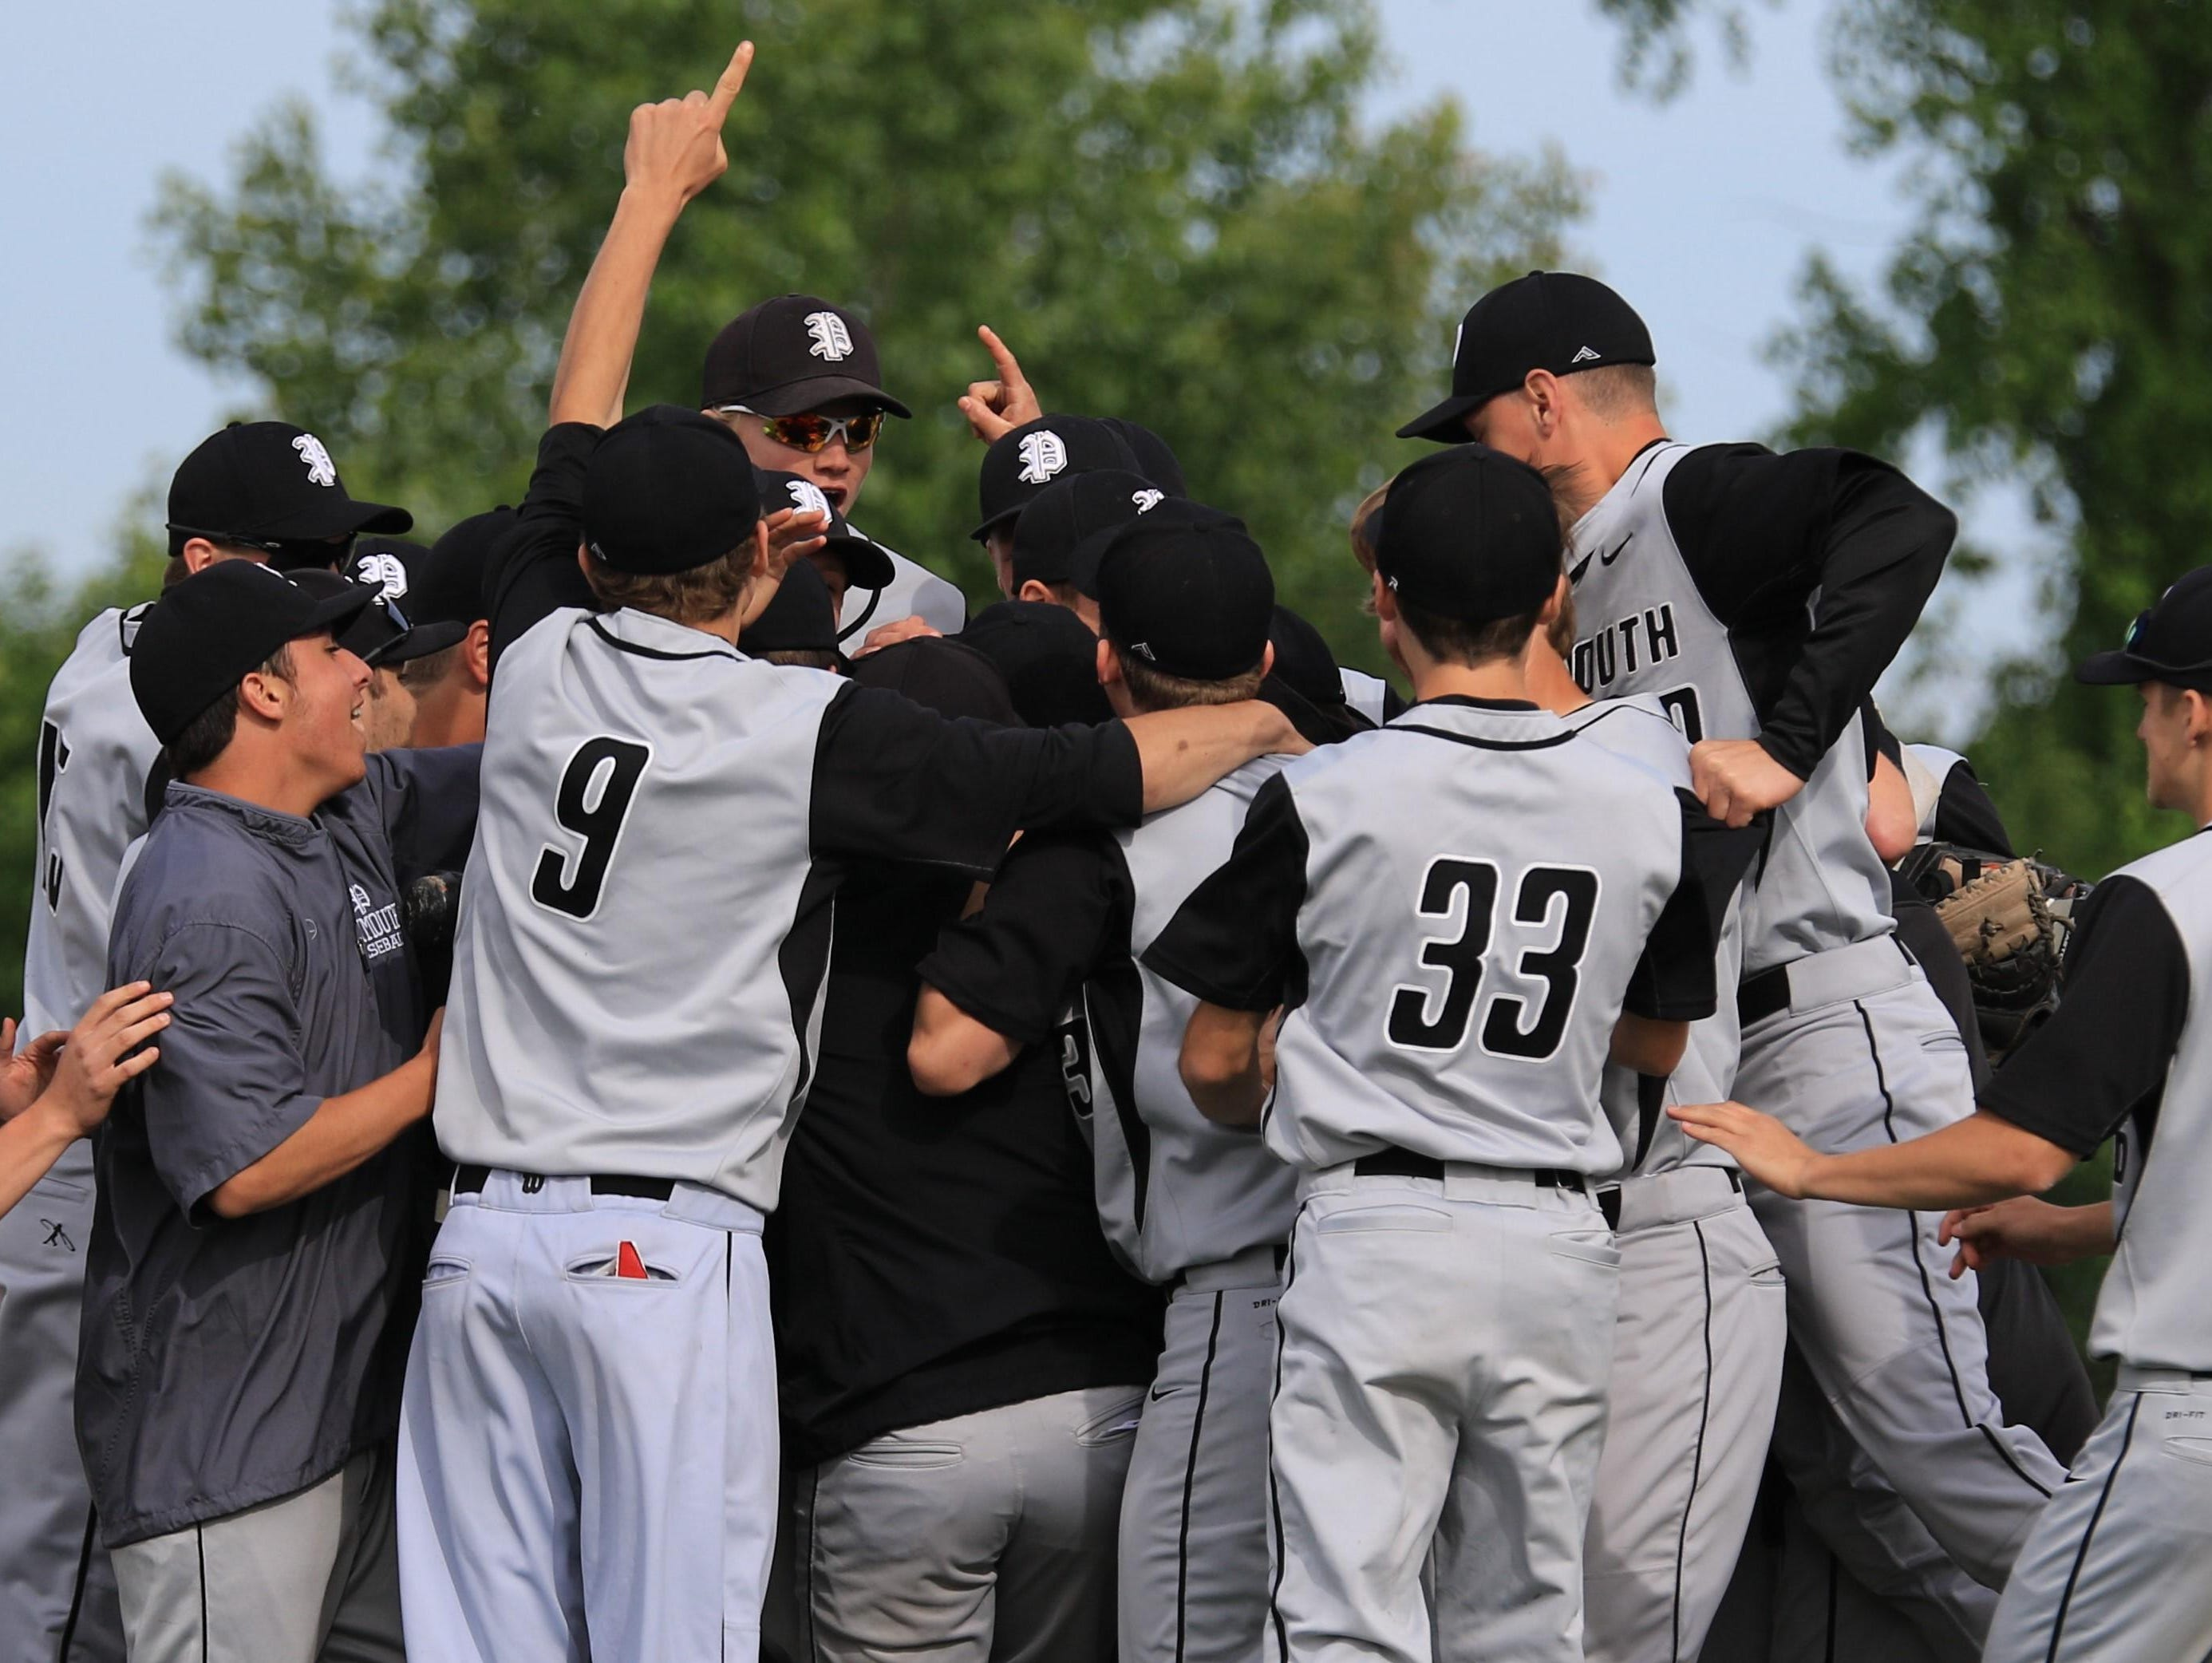 Plymouth baseball players mob each other after winning Monday's Division 1 district championship, 2-1, over Westland John Glenn.